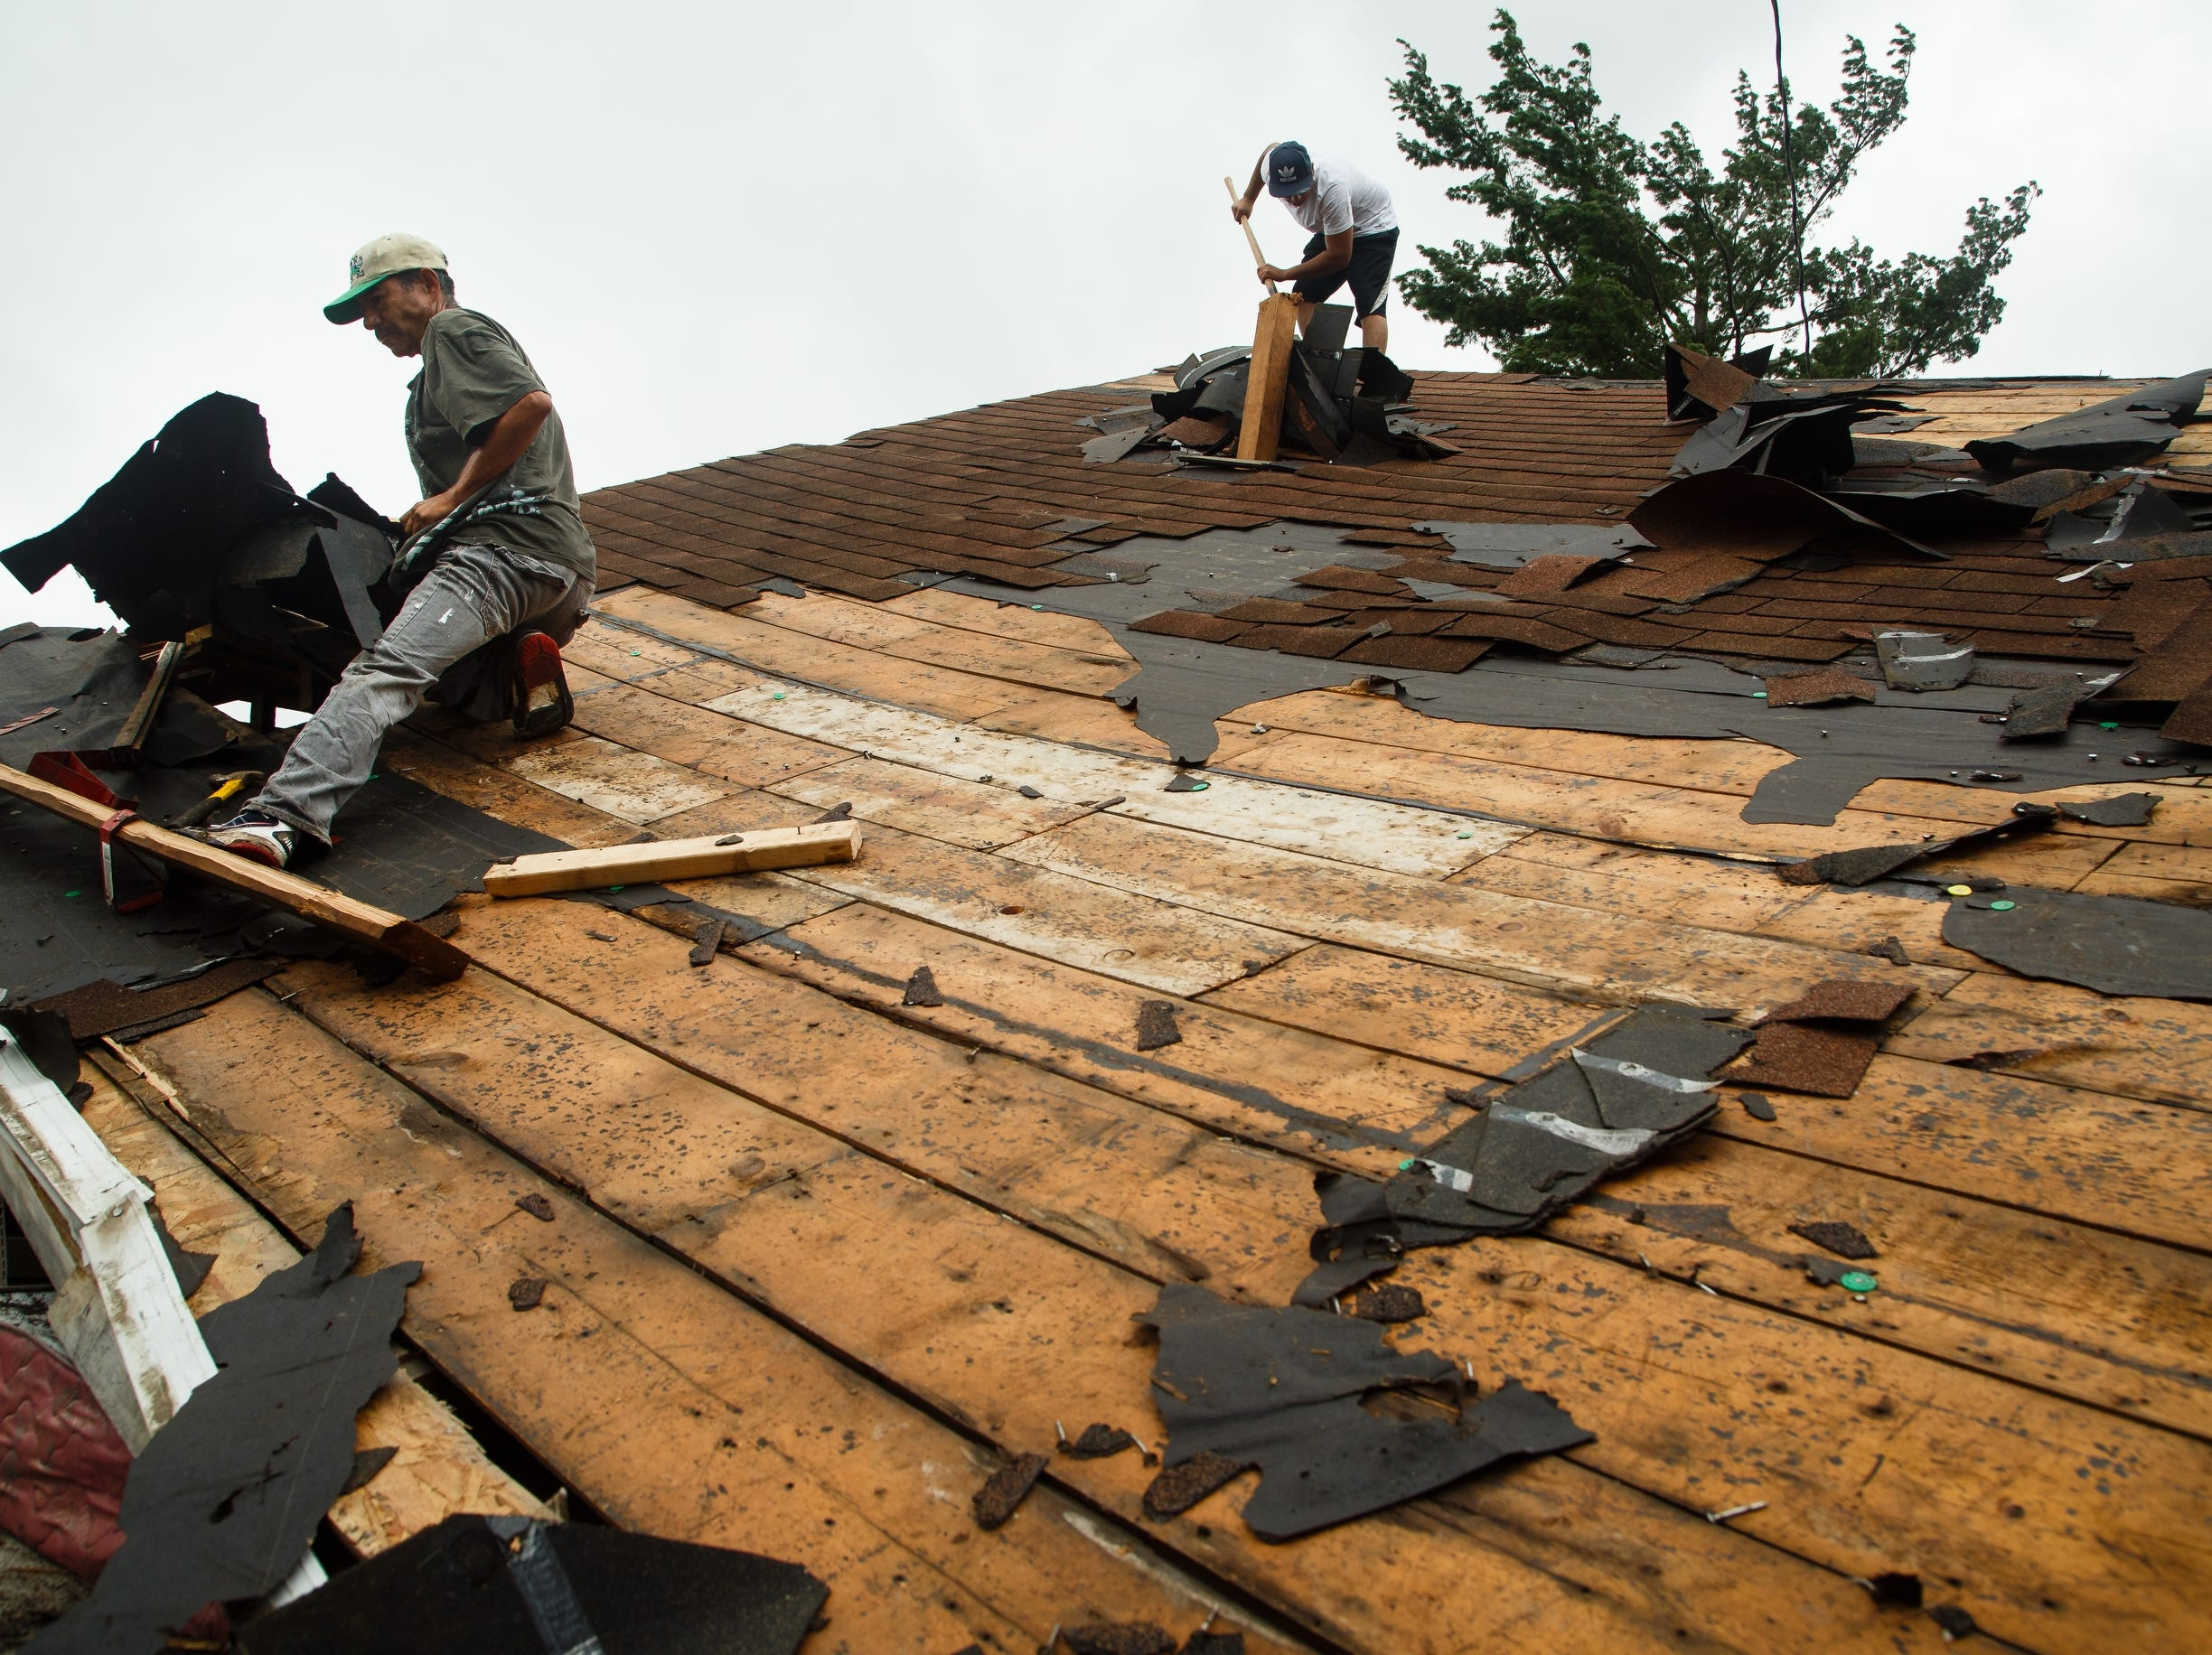 Jose Cervantes, left, and Miguel Ochoa, right, remove the shingles from a blown off roof on Friday, July 20, 2018. Tornadoes swept through central Iowa yesterday causing severe damage but only minor injuries have been reported so far.